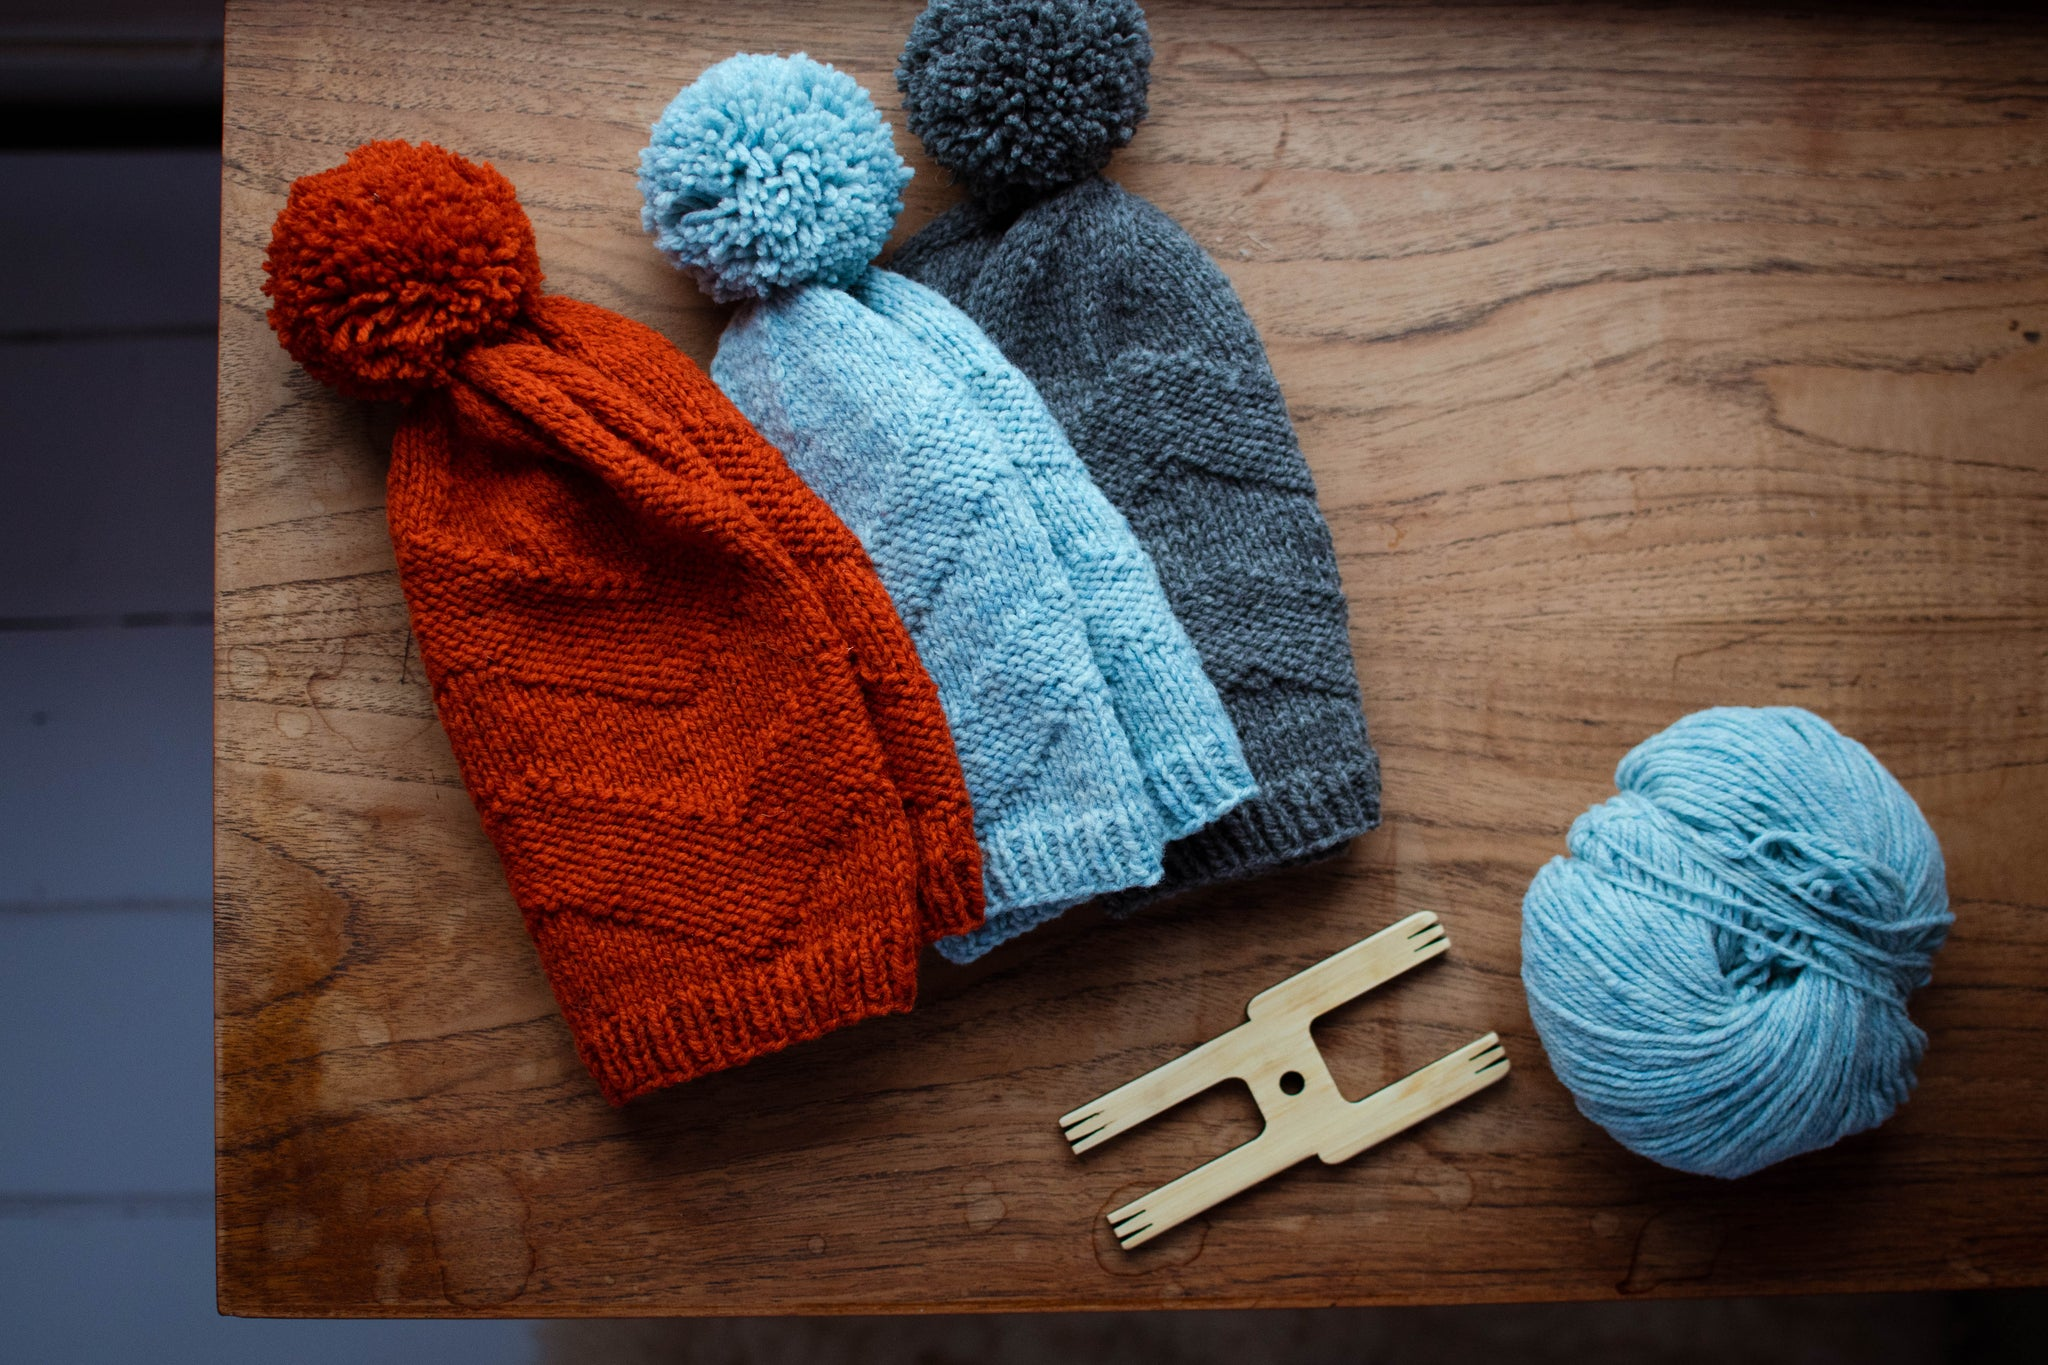 Three beanie hats lie overlapping on a wooden table. They are orange, blue and grey and folded in half. Next to them is a blue ball of yarn and a wooden pom pom tool